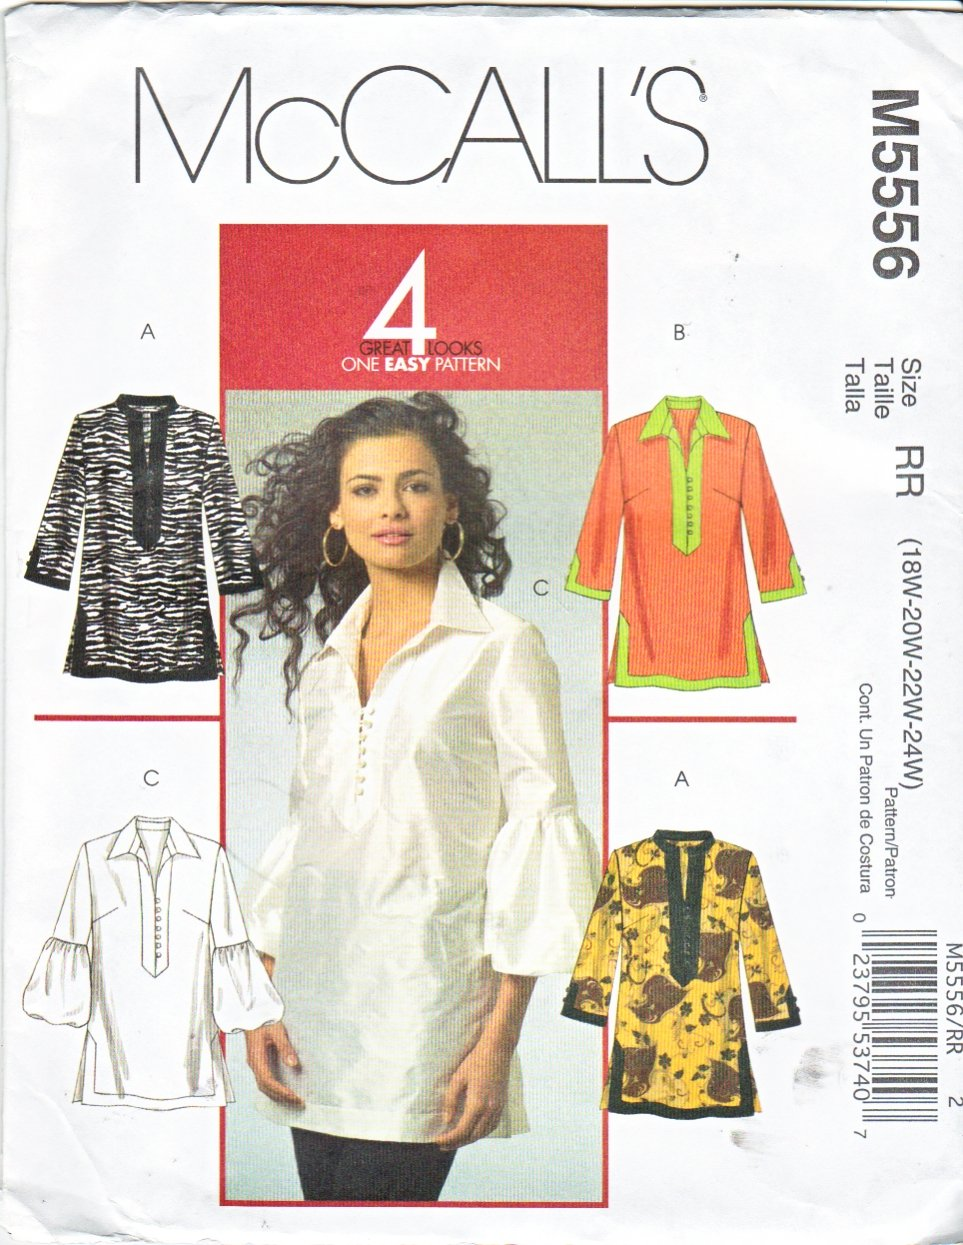 McCall's Sewing Pattern 5556 Womans Plus Size 18W-24W Pullover Tunic Top Sleeve Collar Variations